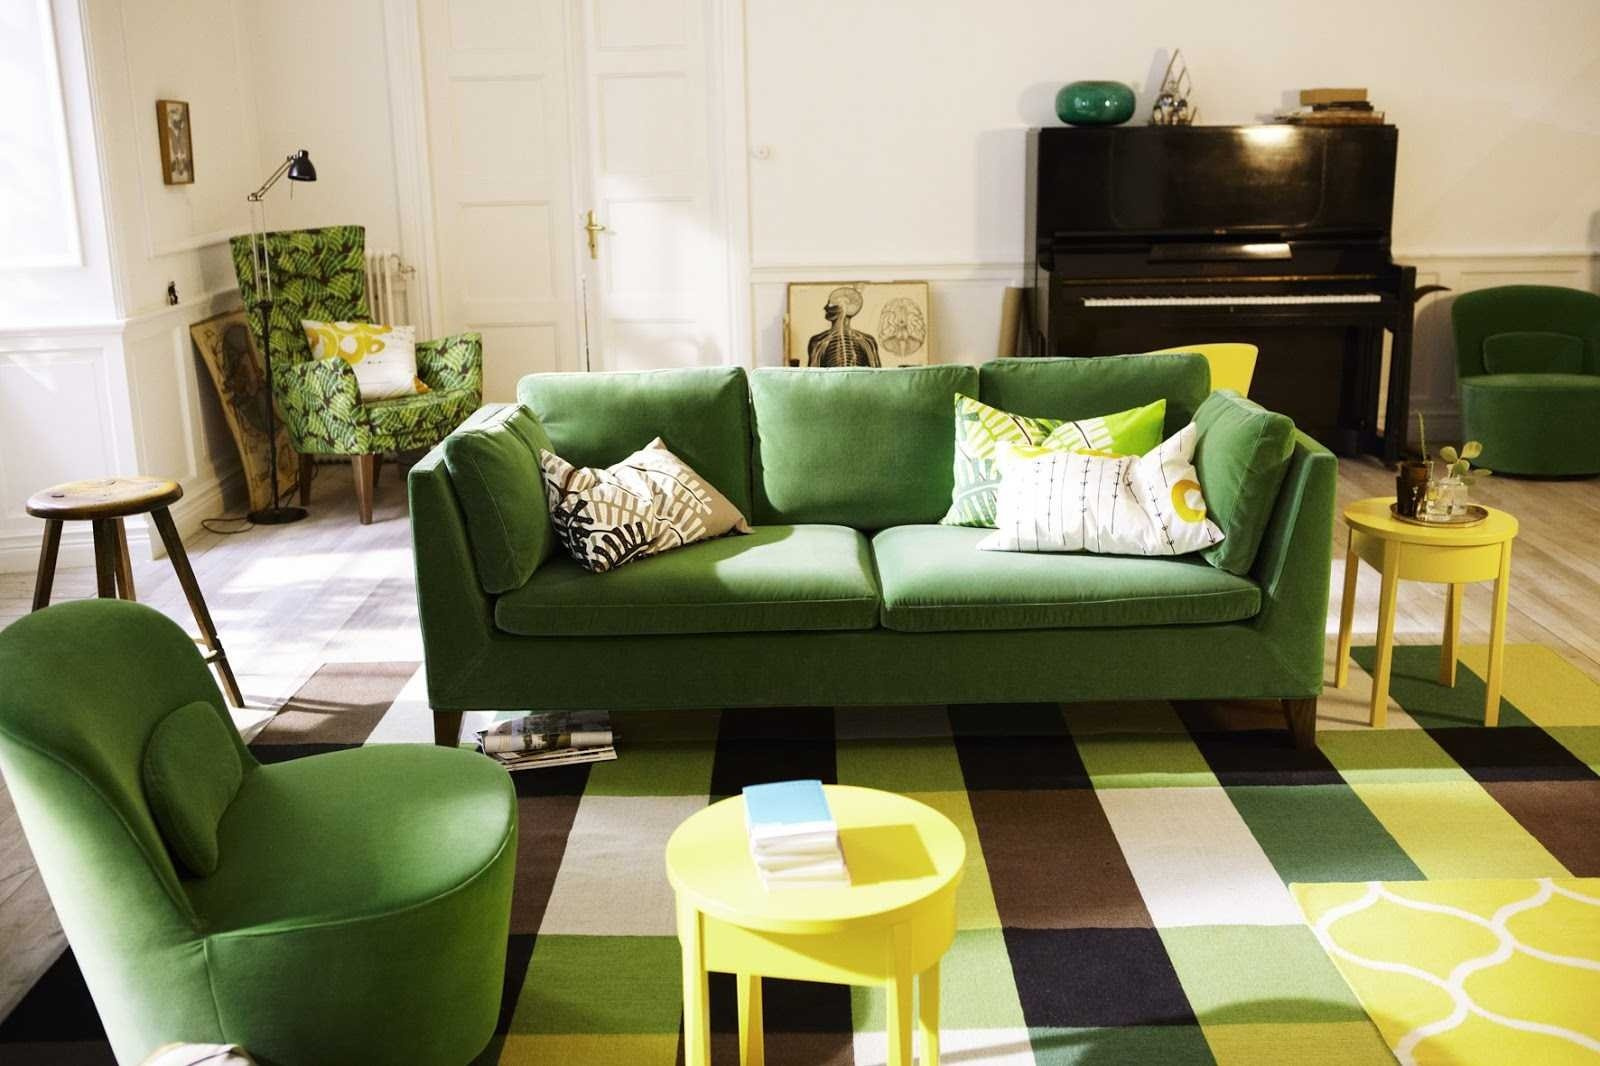 Unusual colored rug and green upholstered furniture for retro living